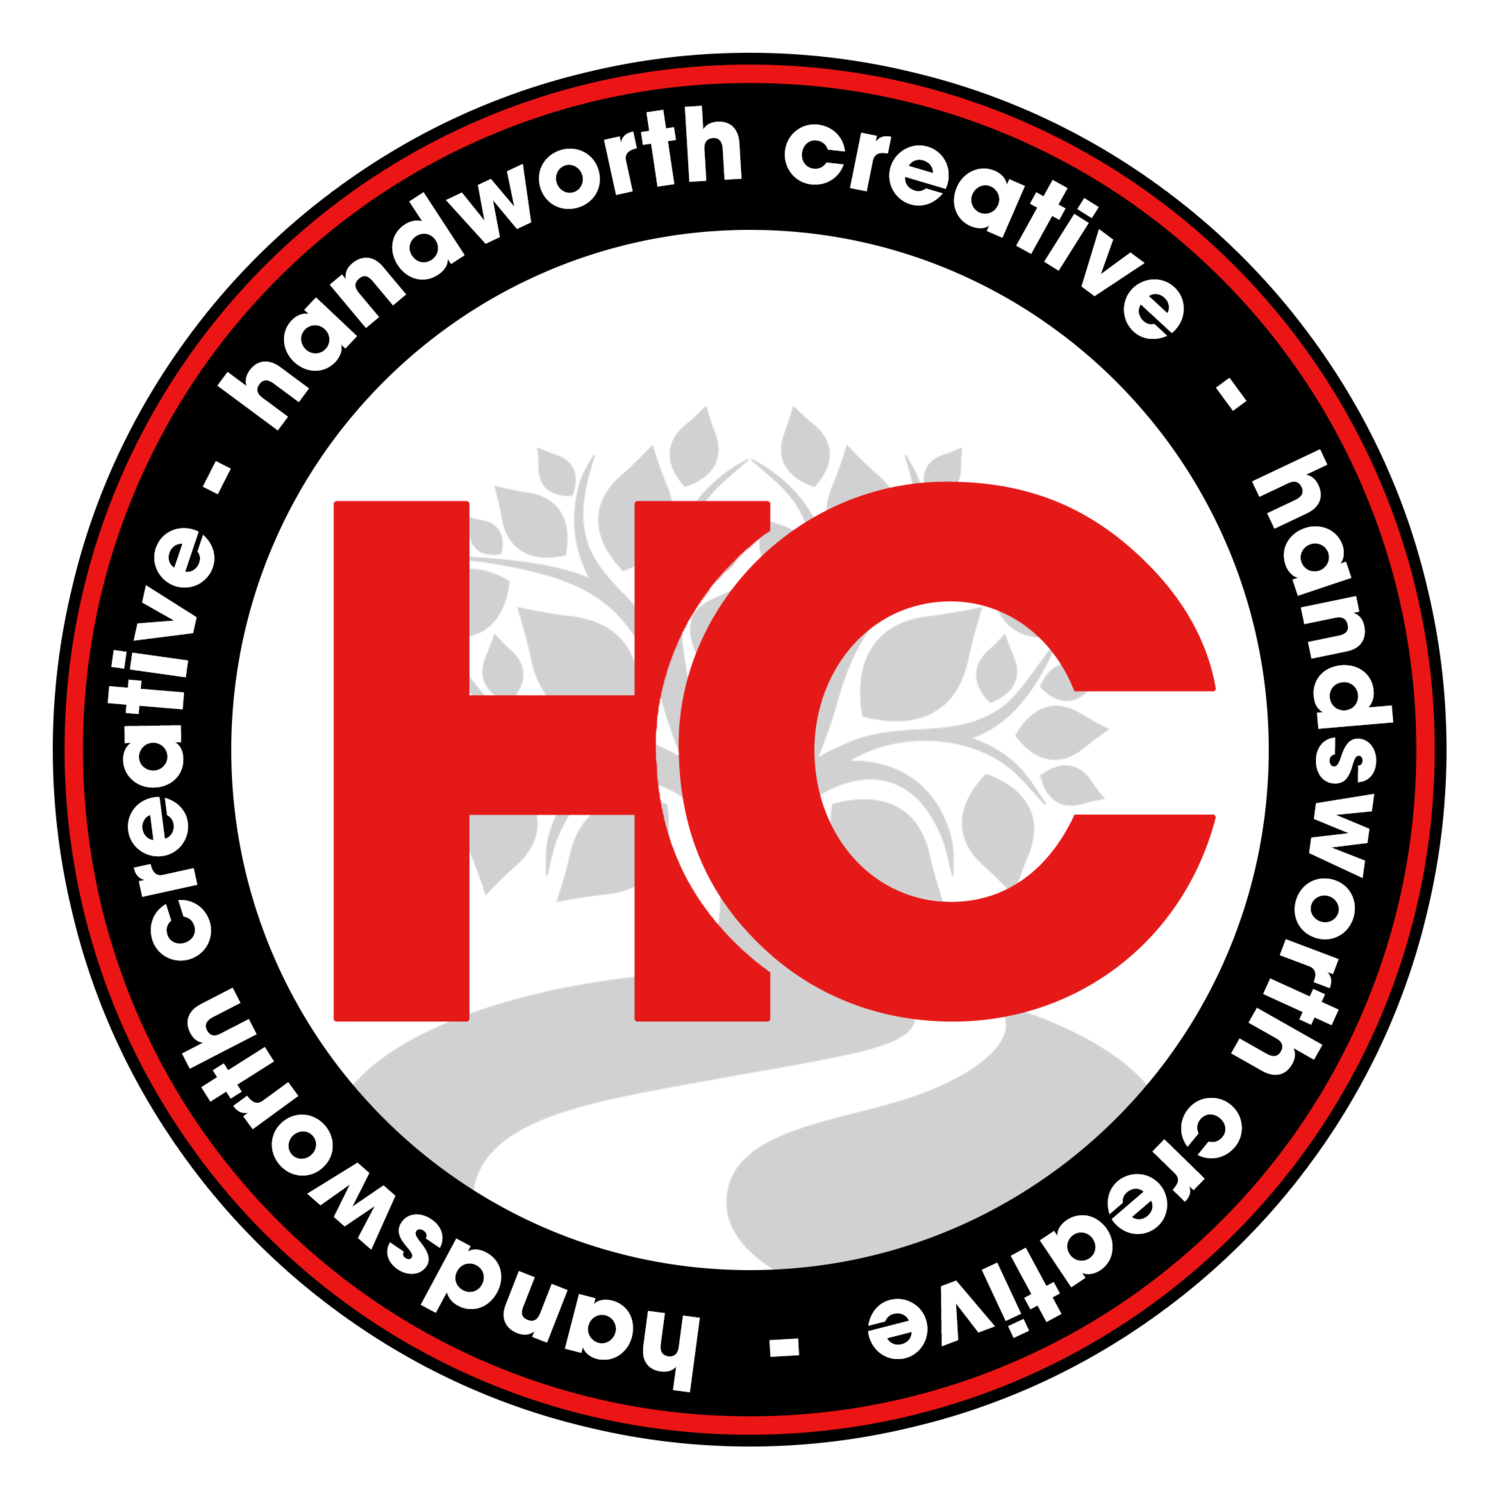 HANDSWORTH CREATIVE